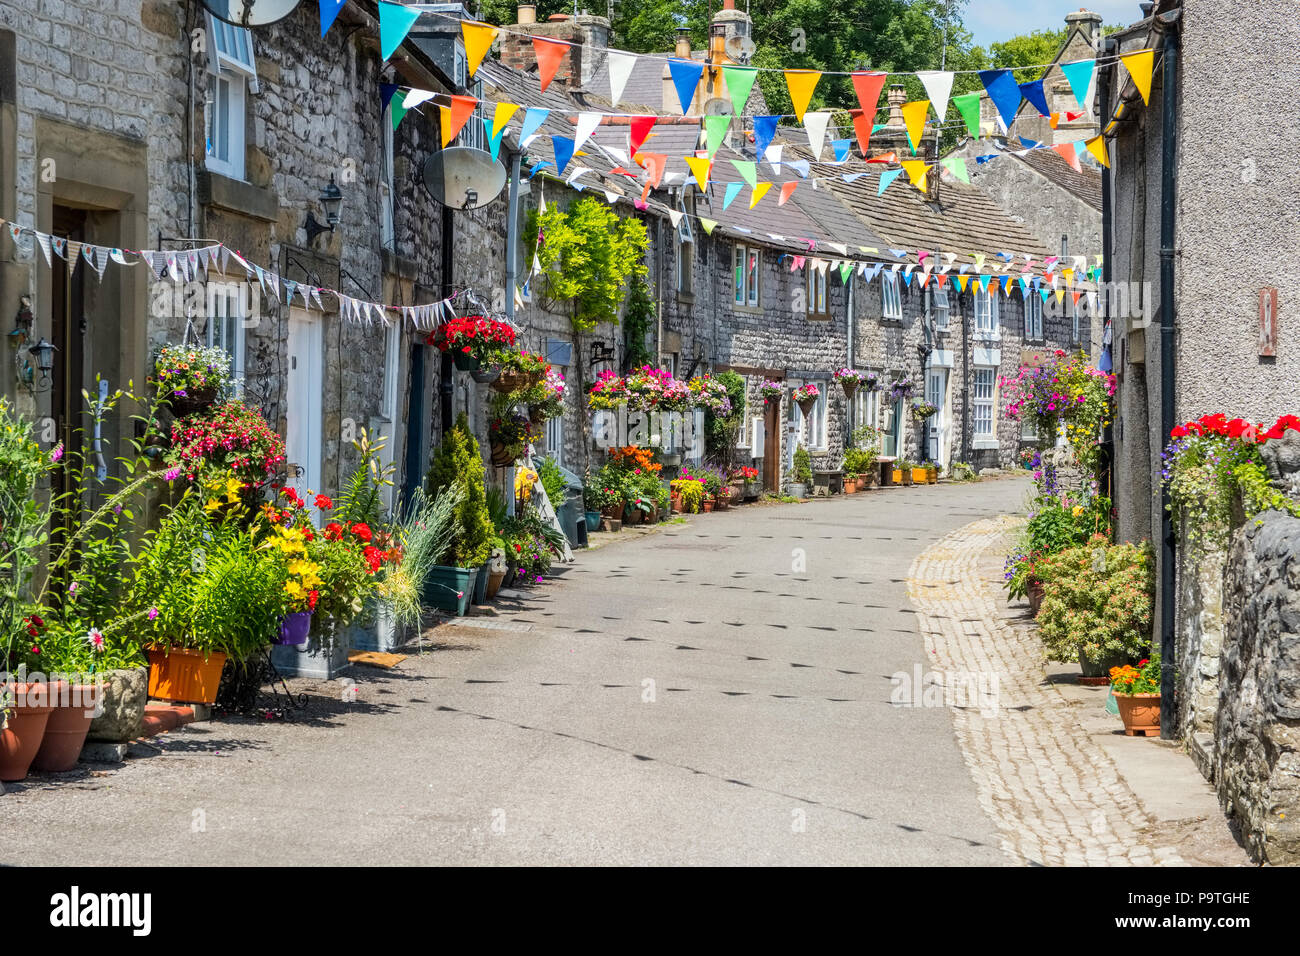 The Peak District village of Tideswell in Derbyshire, UK - Stock Image